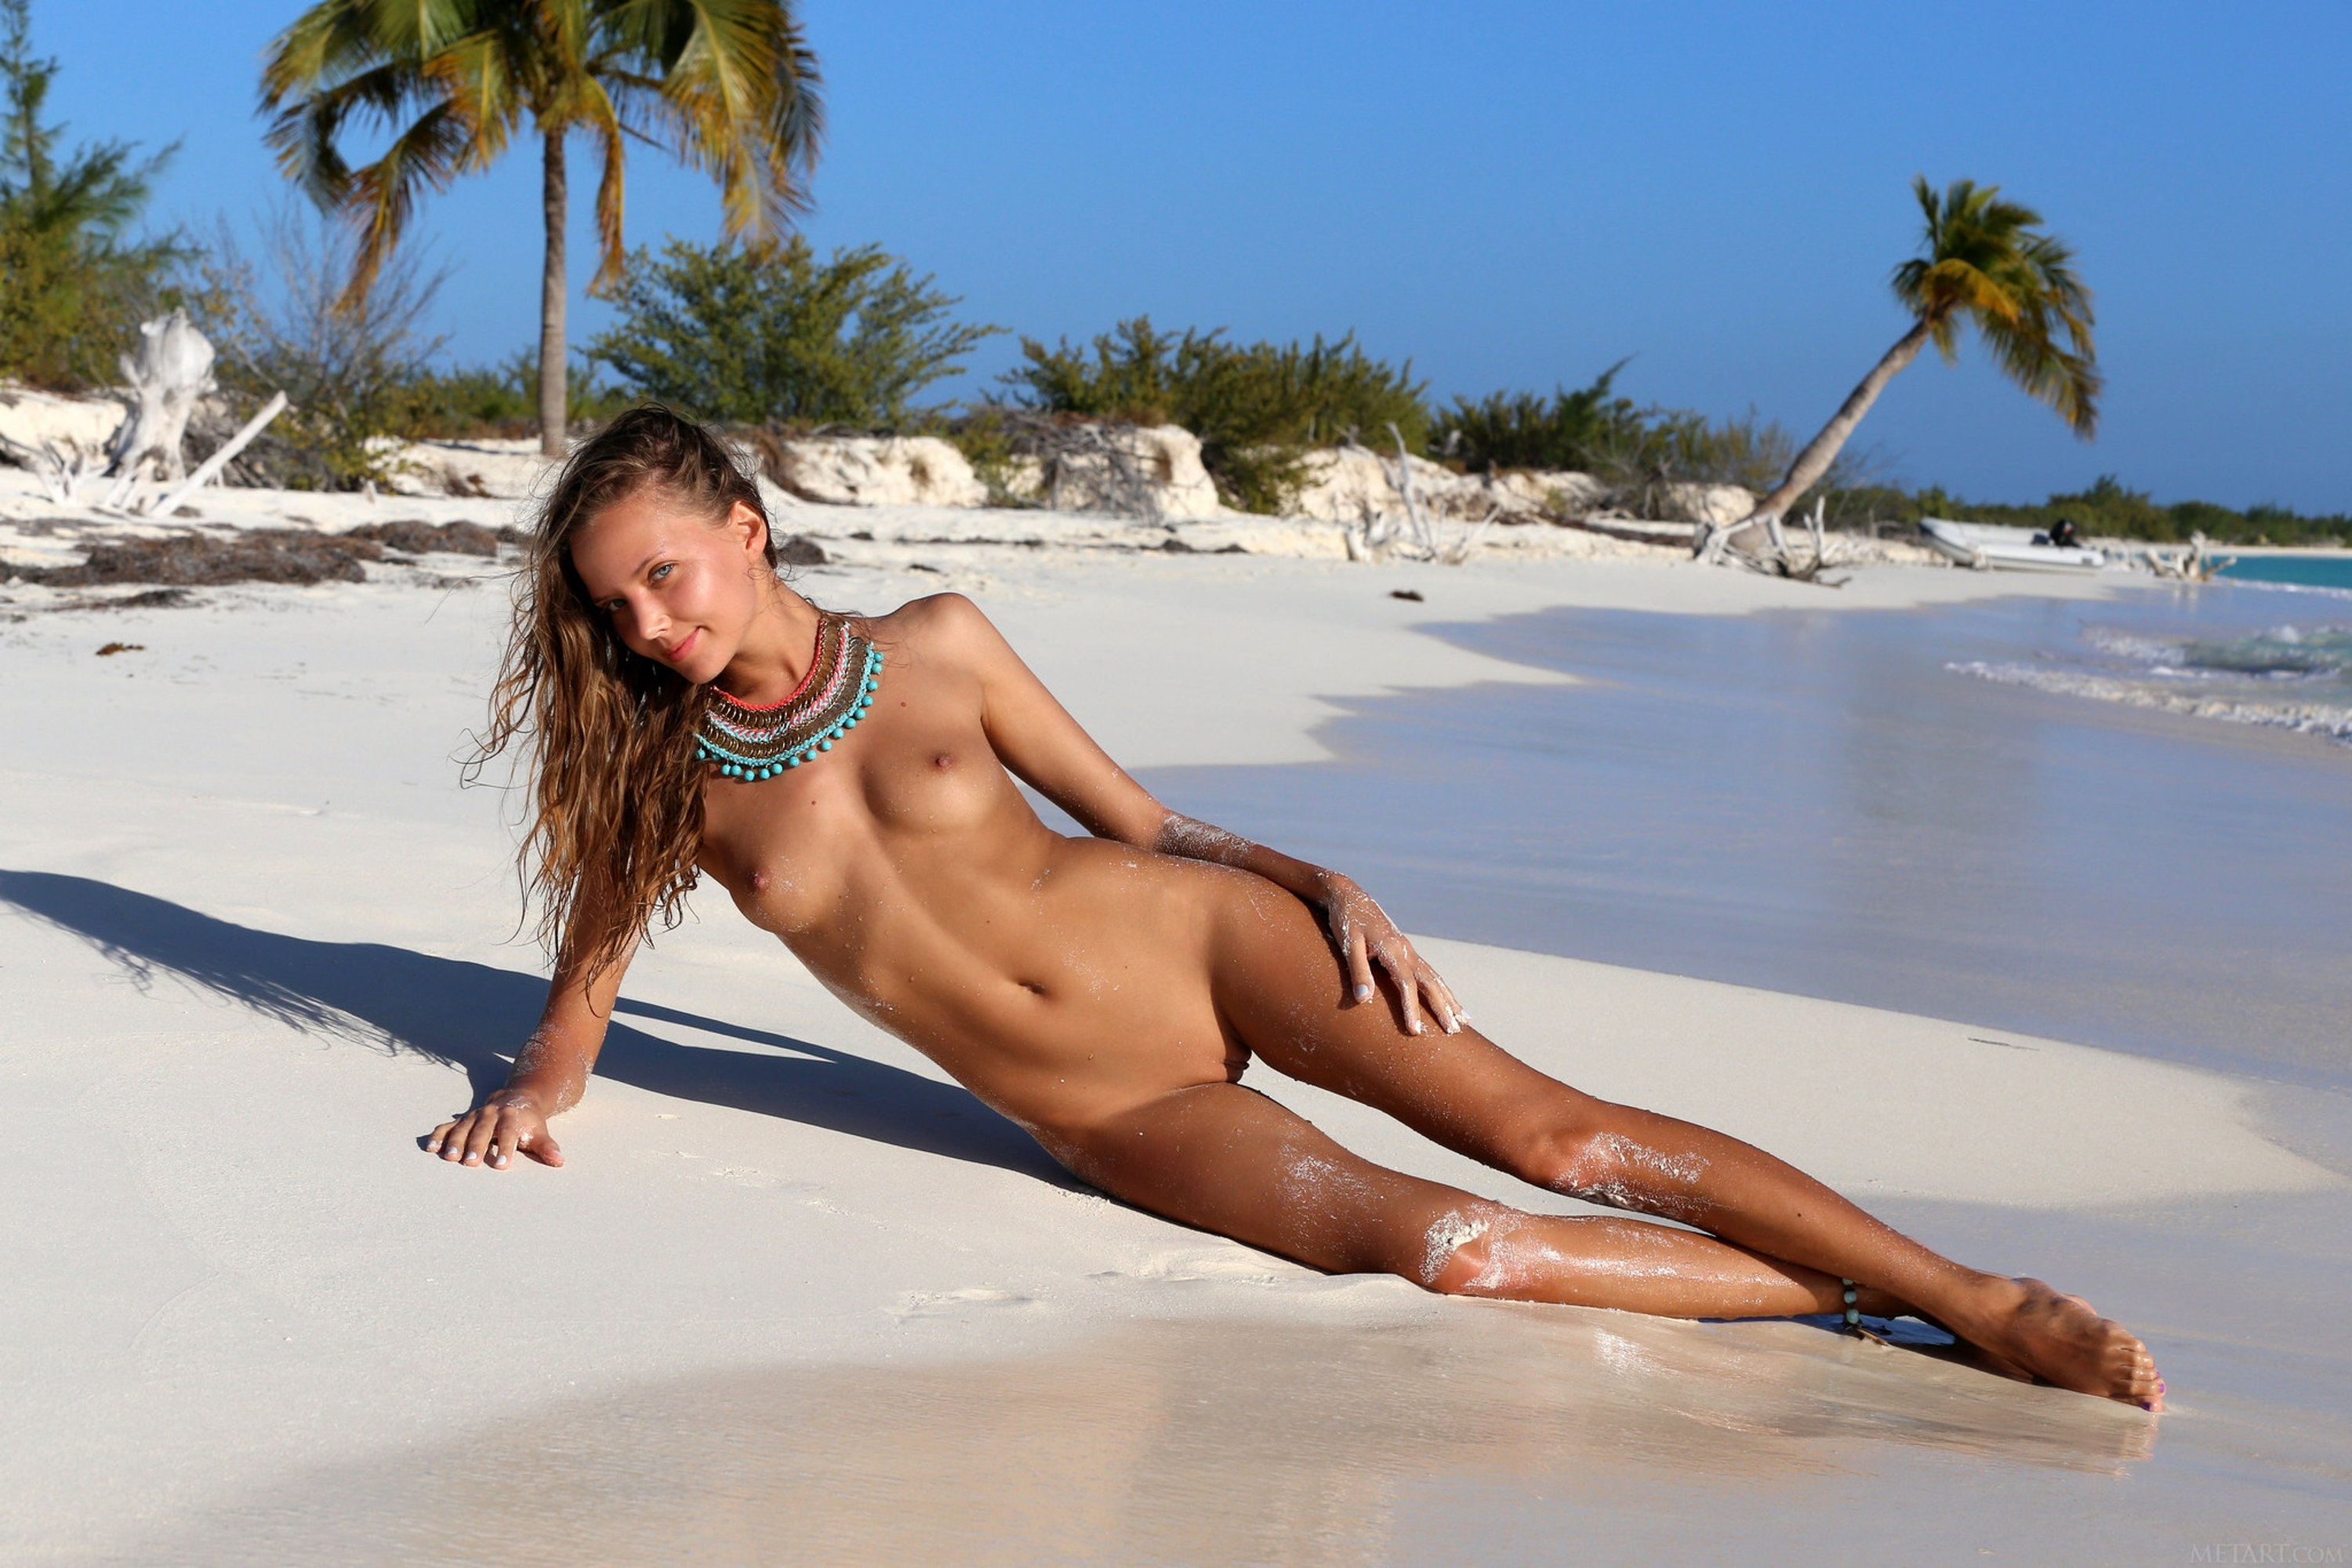 Wild girls nude beaches with